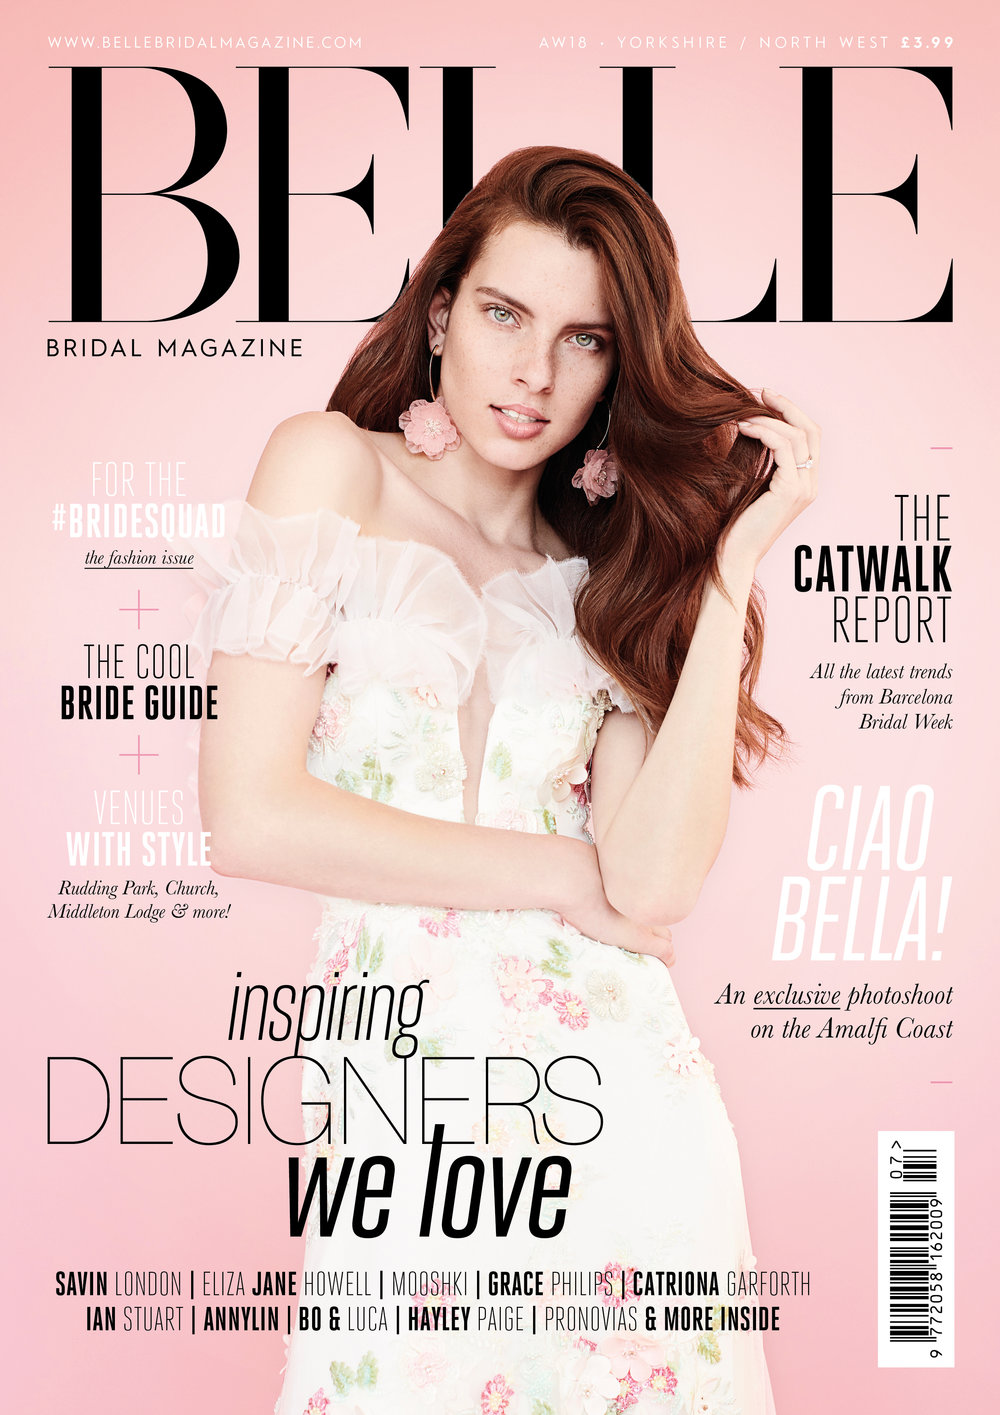 belle bridal feature